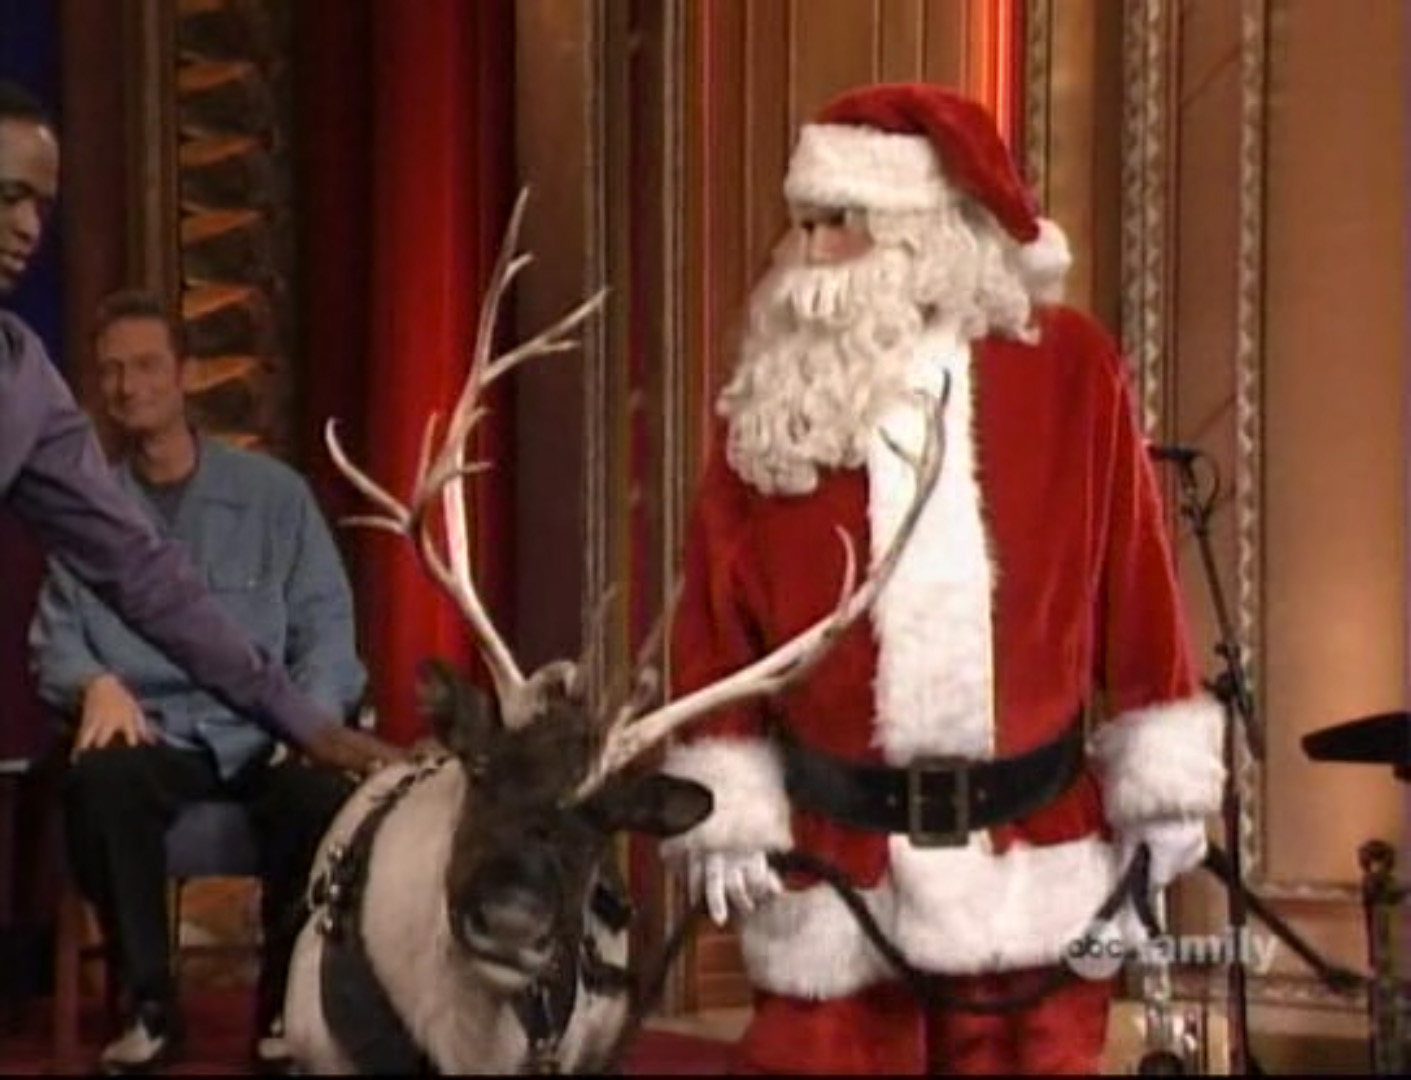 Santa Claus and Donner